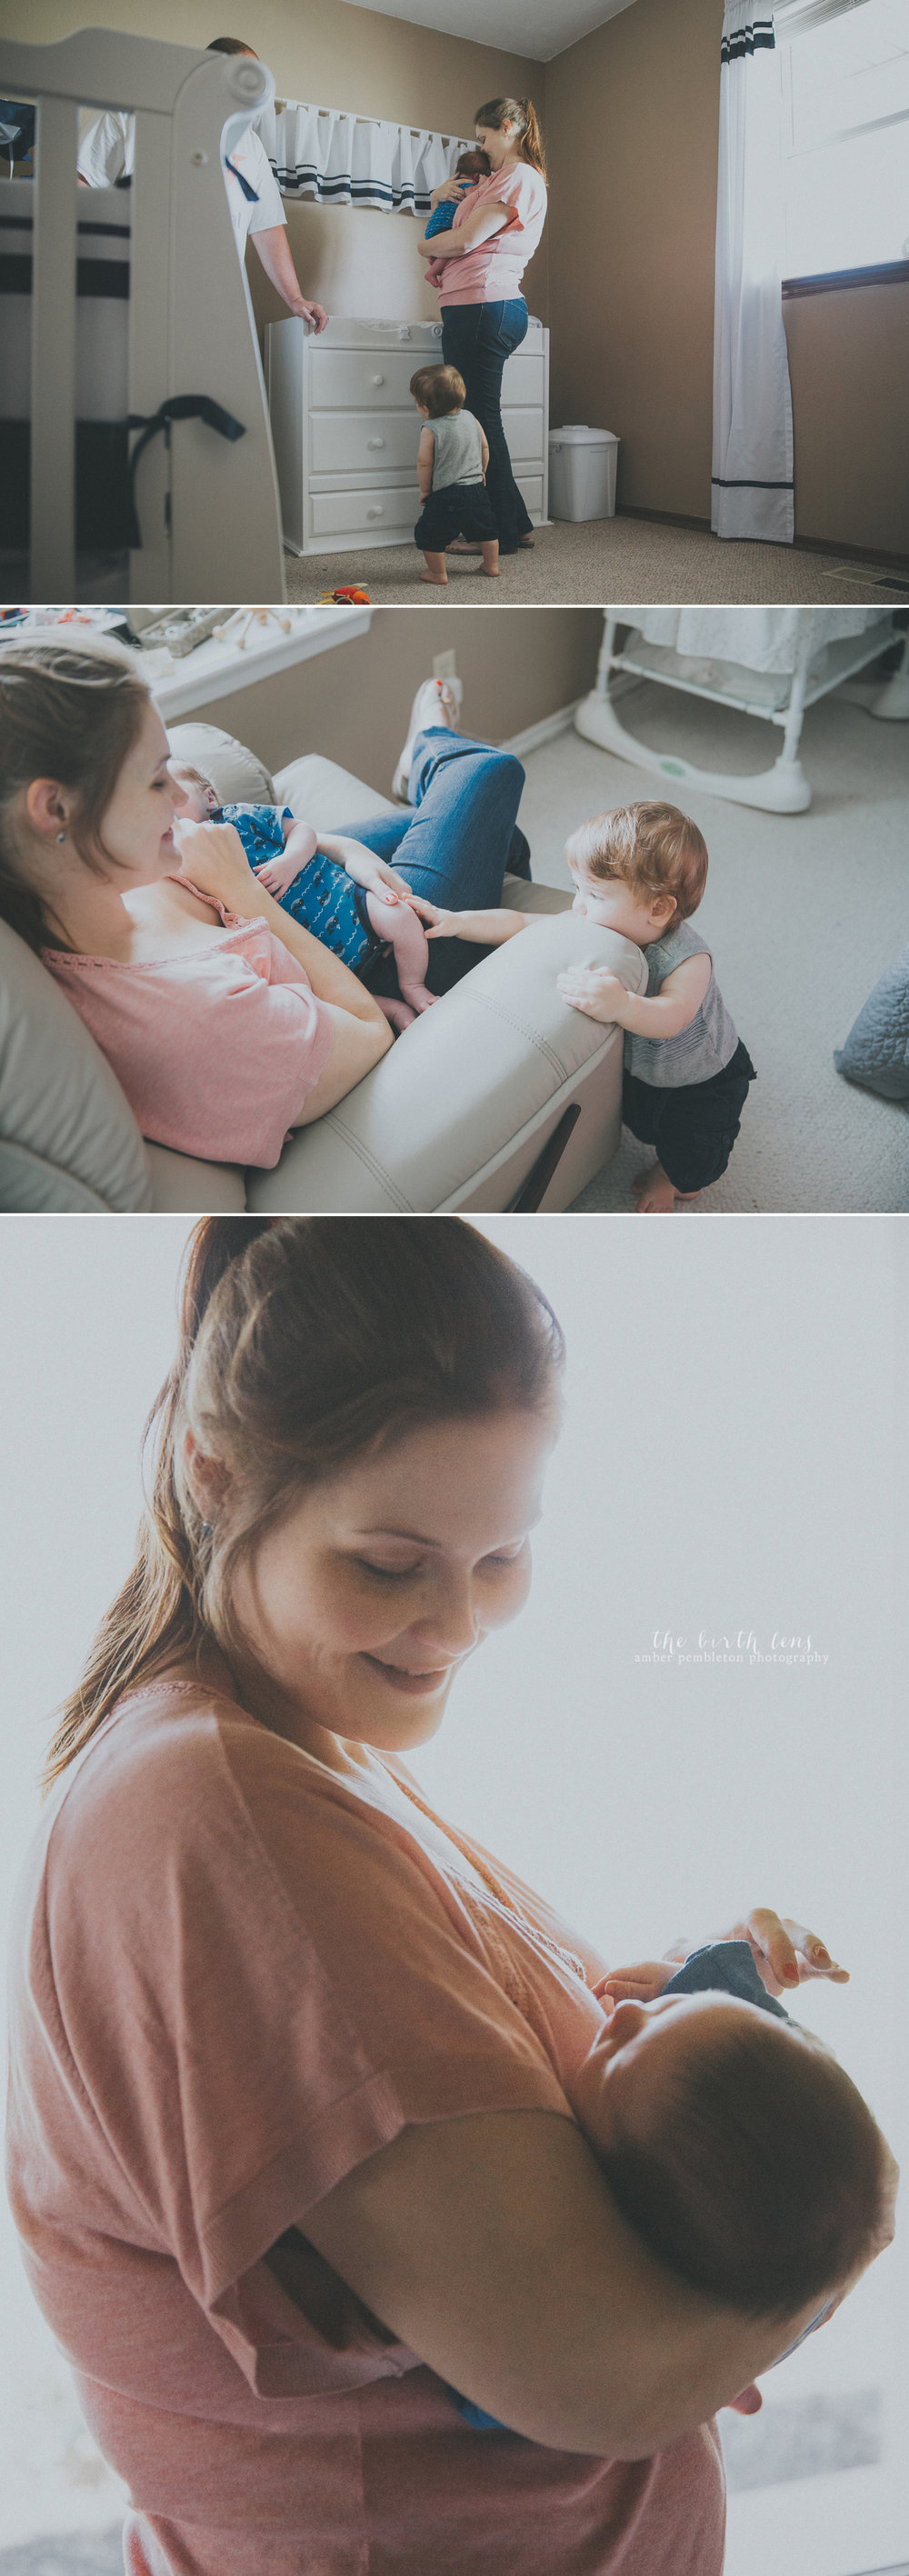 lifestyle-newborn-photography-session-truckee.jpg